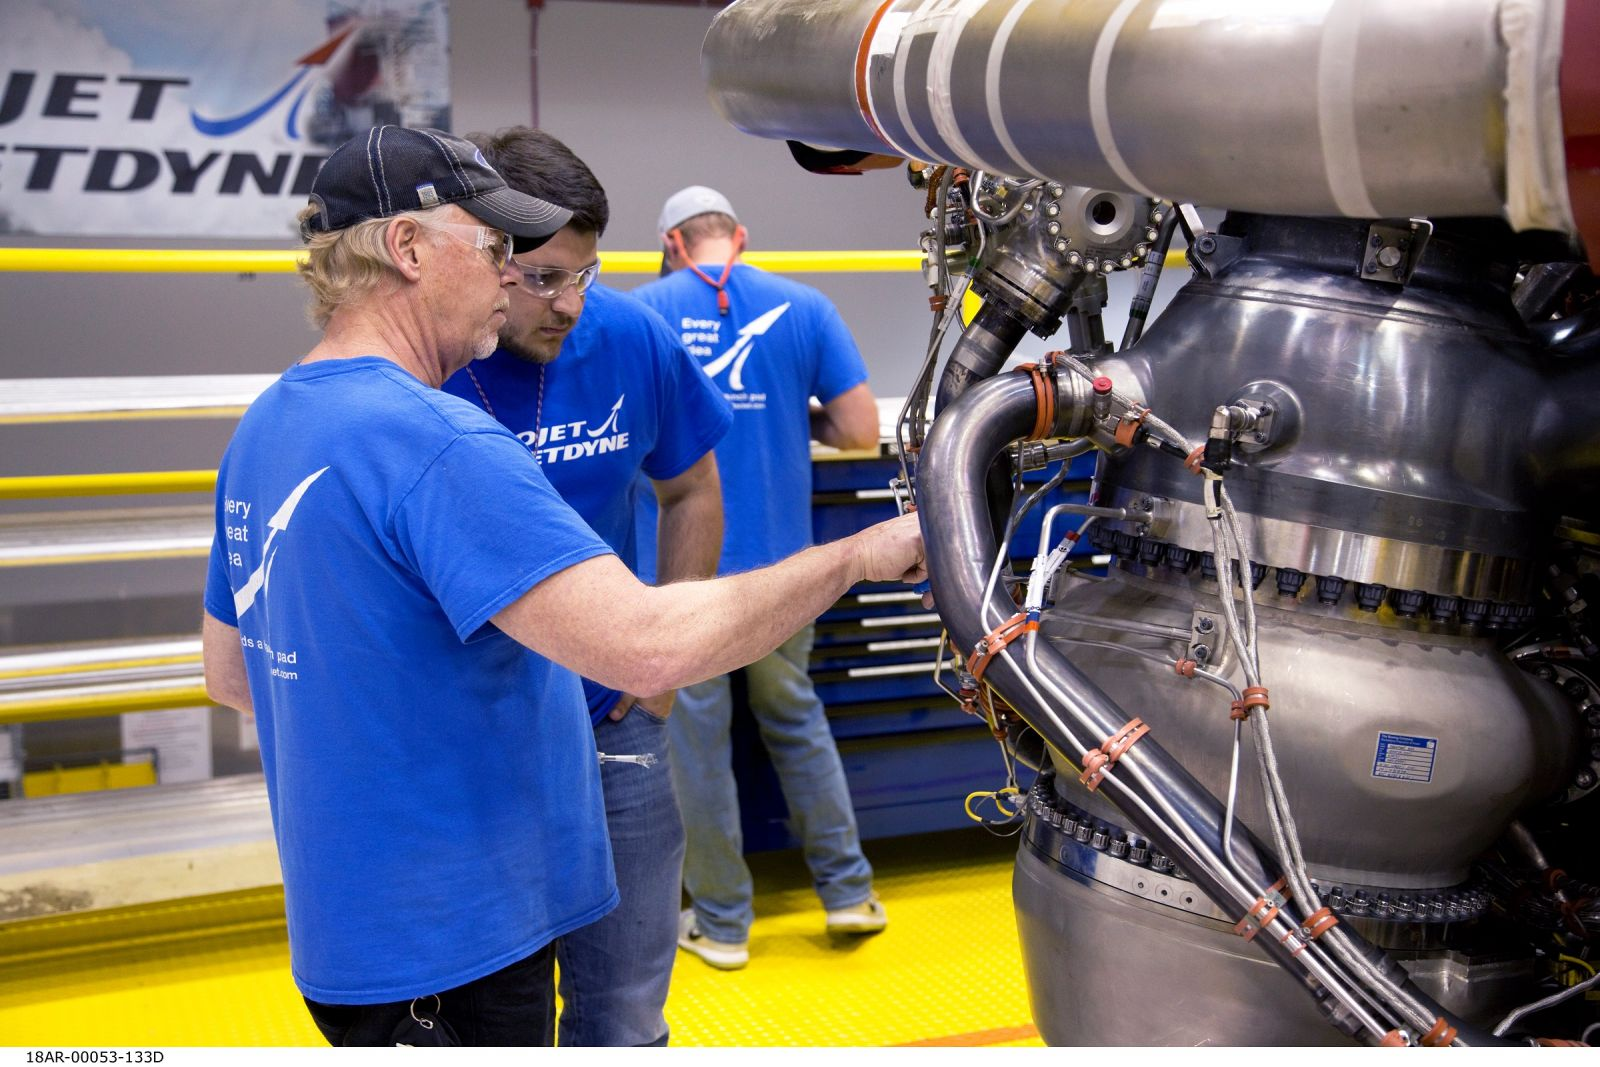 Aerojet Rocketdyne technicians inspect the first AR-22 rocket engine at the Aerojet Rocketdyne facility located at Stennis Space Center. The engine was built for Boeing as part of the U.S. Defense Advanced Research Projects Agency Experimental Spaceplane program. This new Boeing spaceplane, called Phantom Express, is intended to demonstrate a new paradigm for more routine, responsive and affordable space access. Photo courtesy of Aerojet Rocketdyne